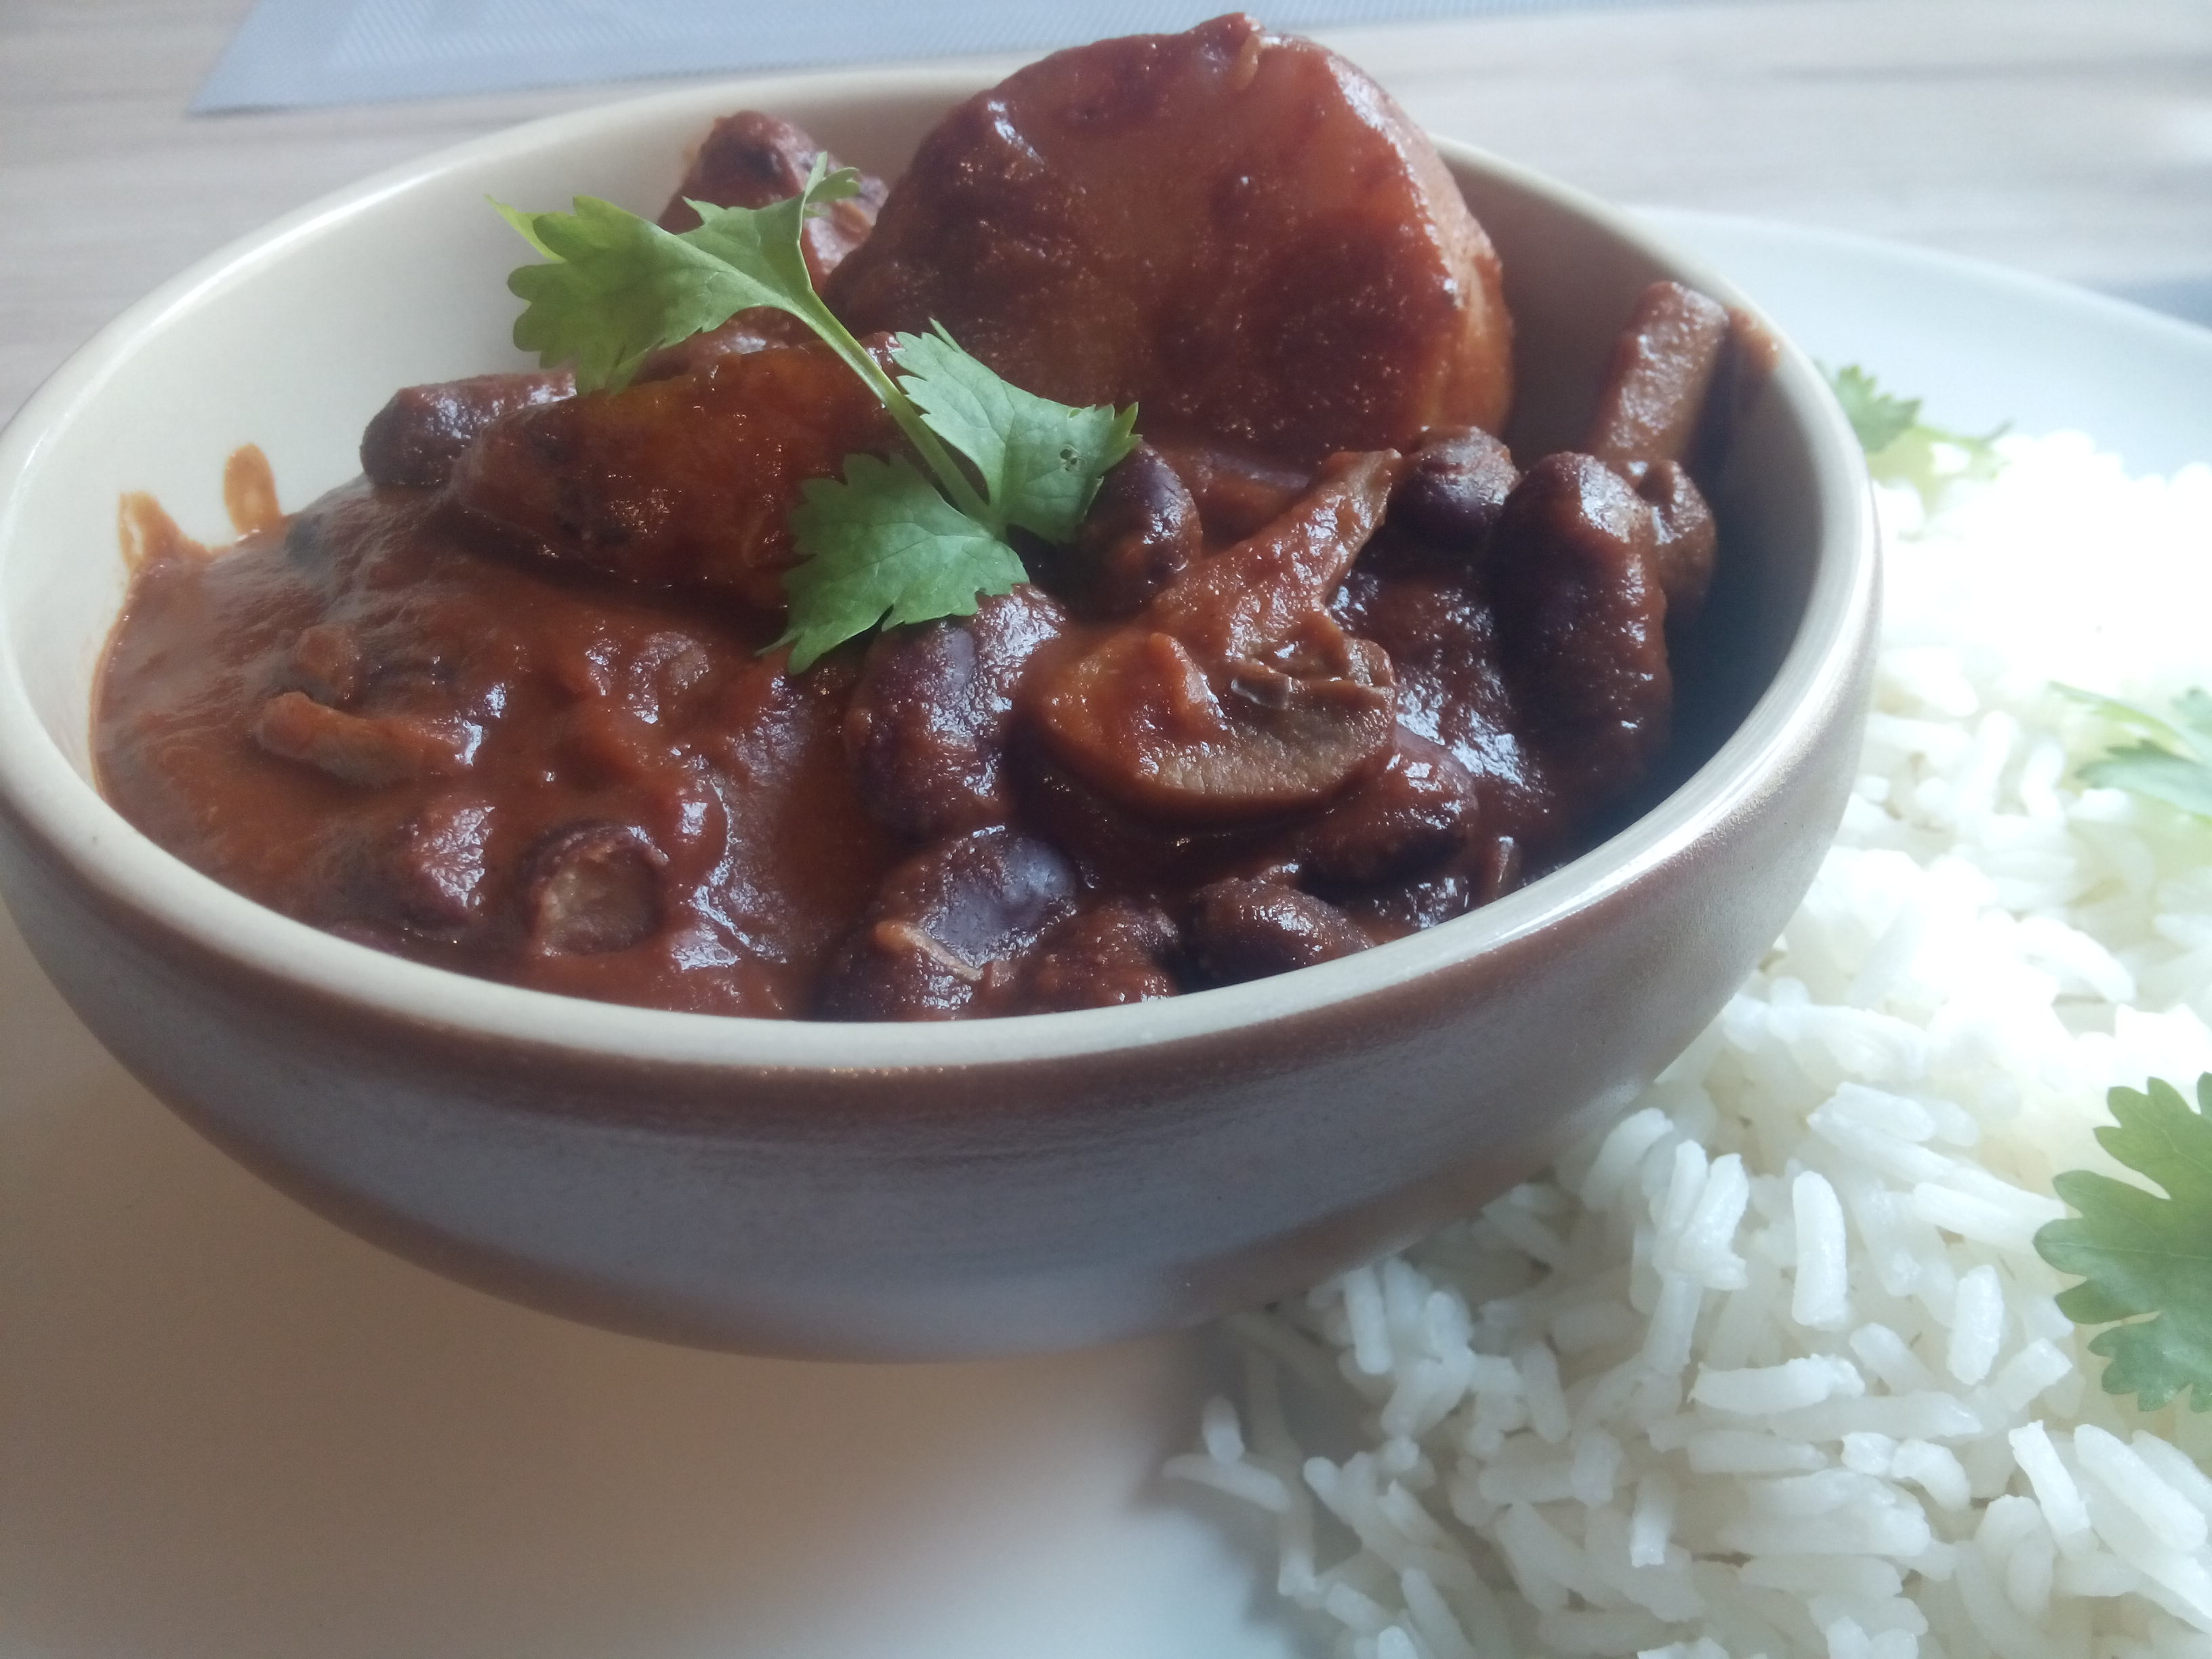 A bowl of beans and vegetables in a chocolate chilli sauce, on a plate beside some rice